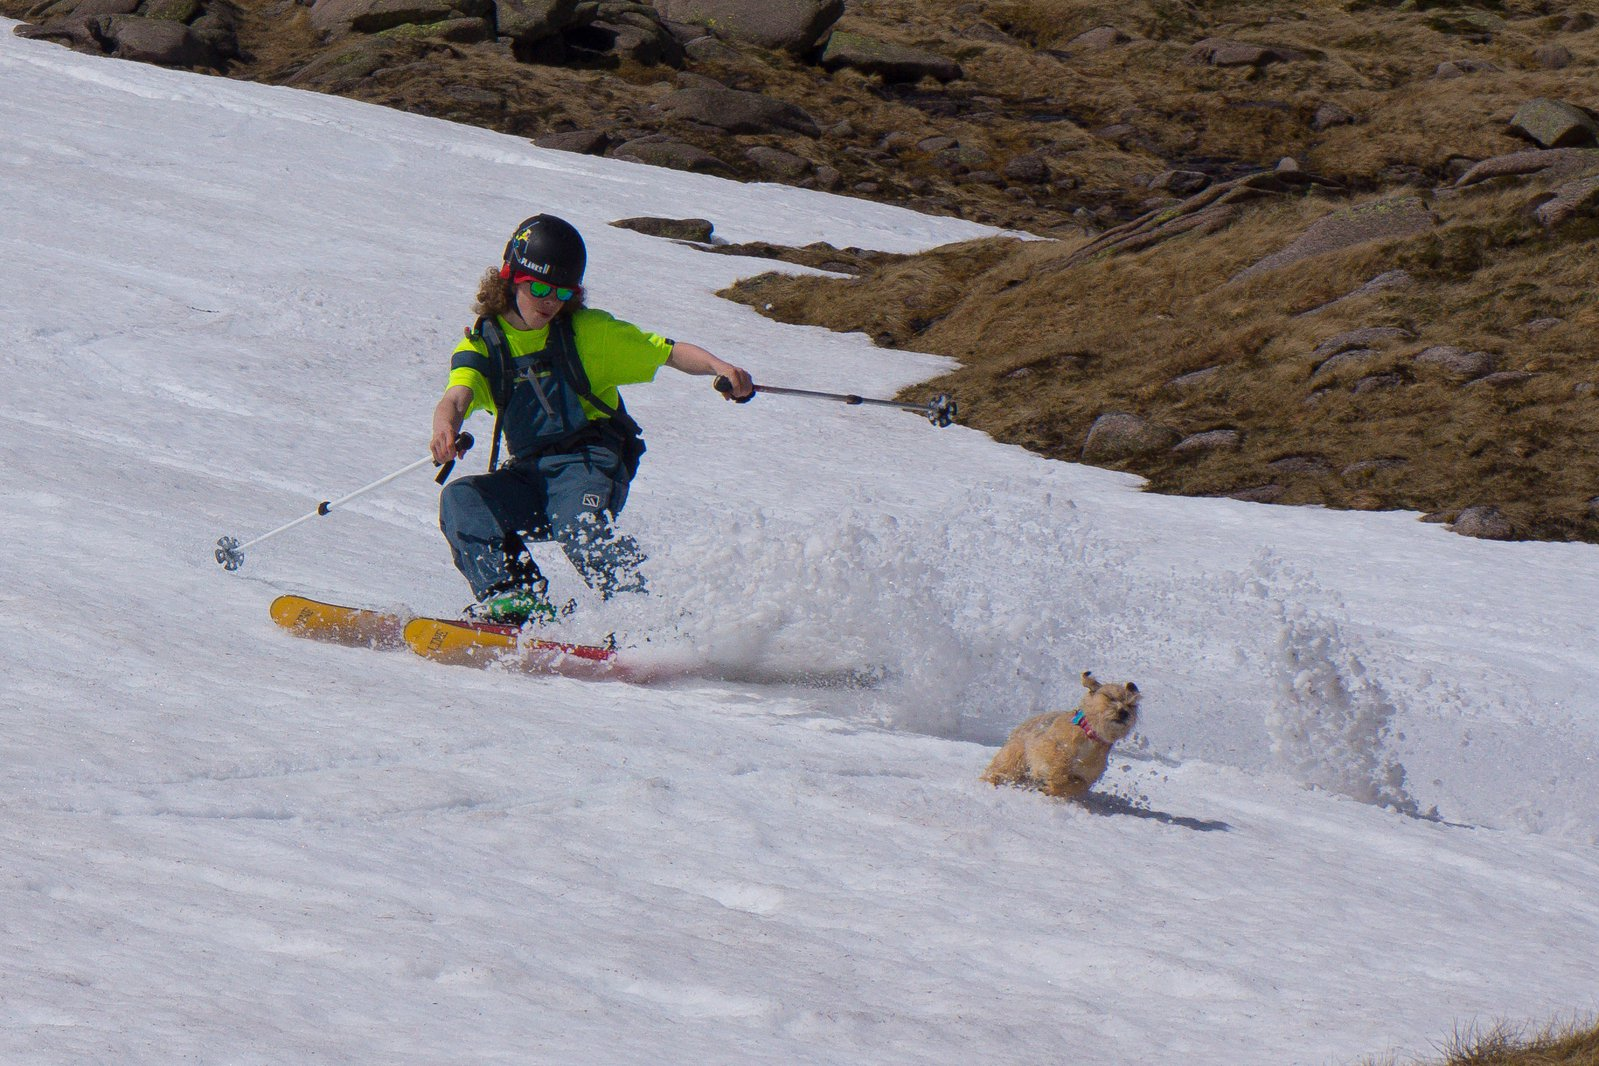 Doggo loves the spring shred